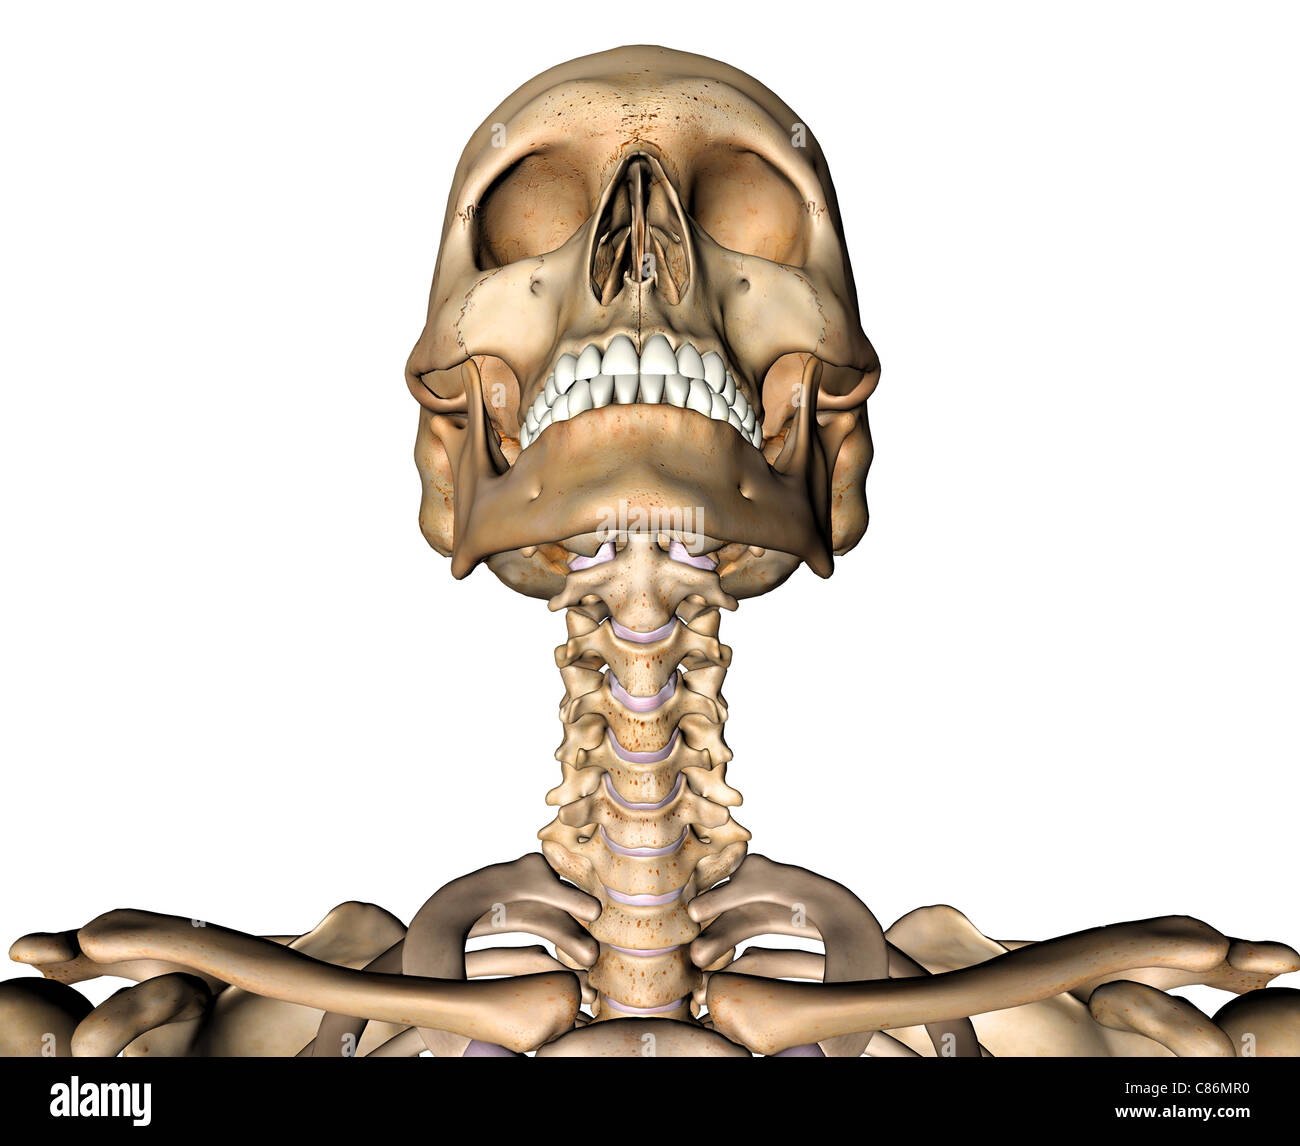 Anterior Skull and Cervical Spine Stock Photo: 39486020 - Alamy